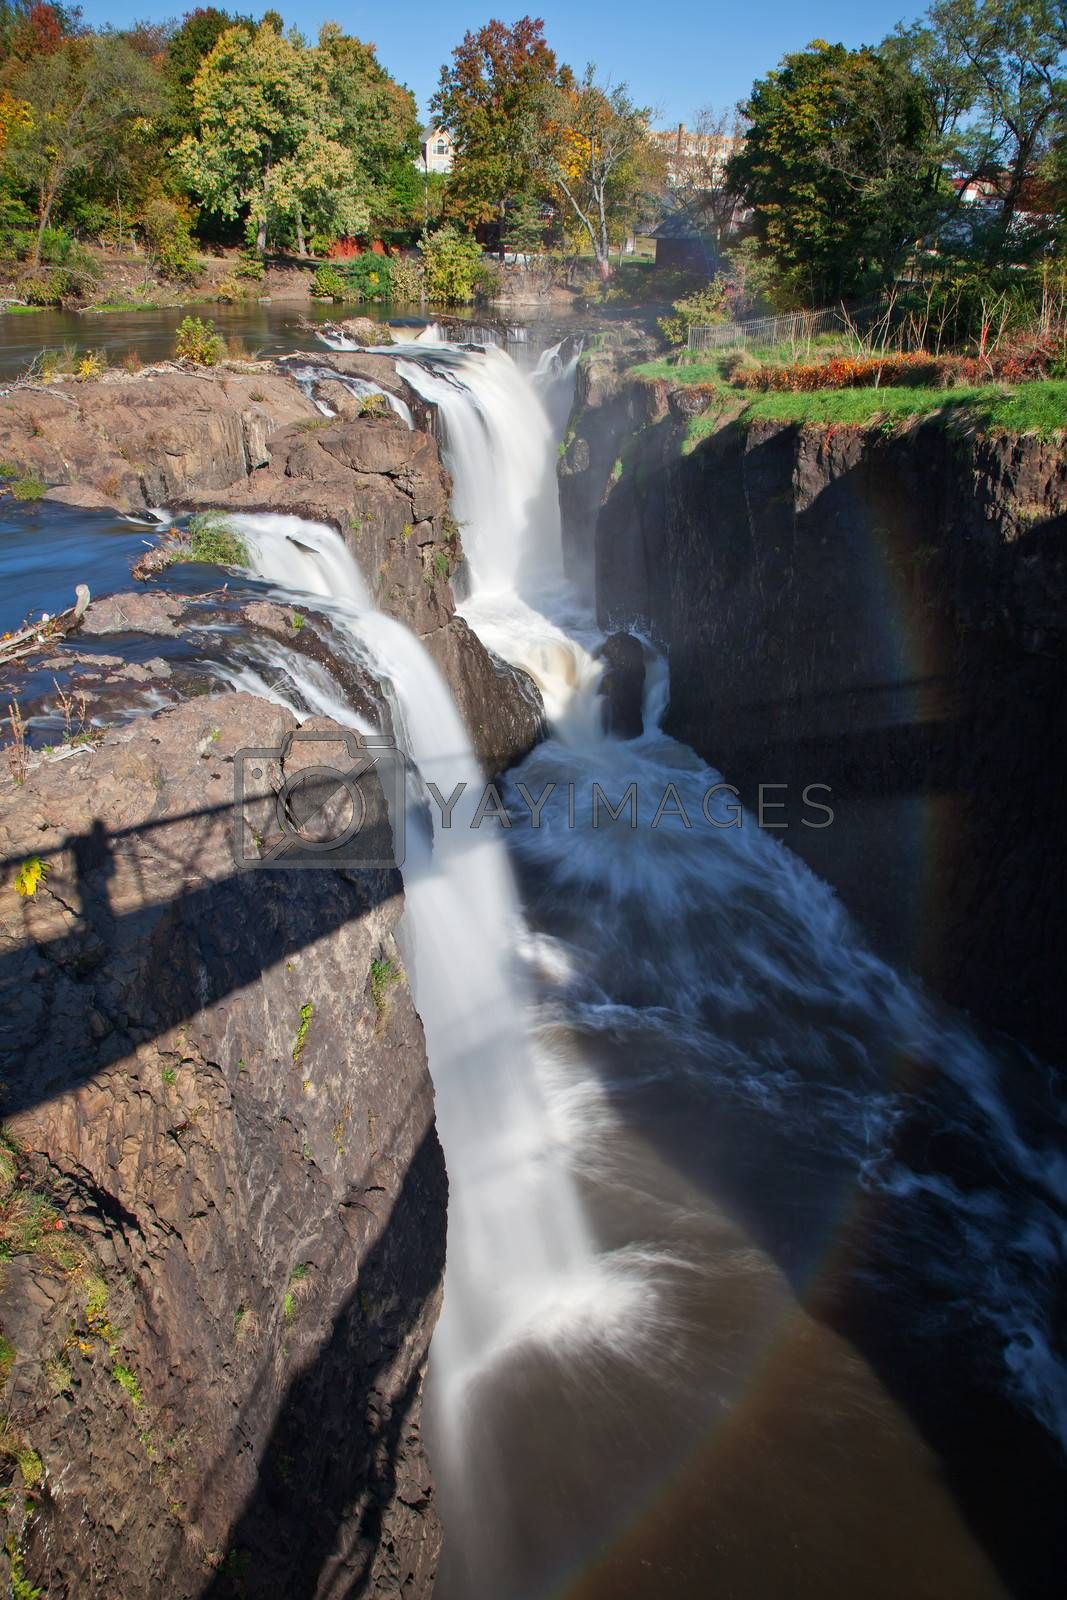 The Great Falls in Paterson, New Jersey